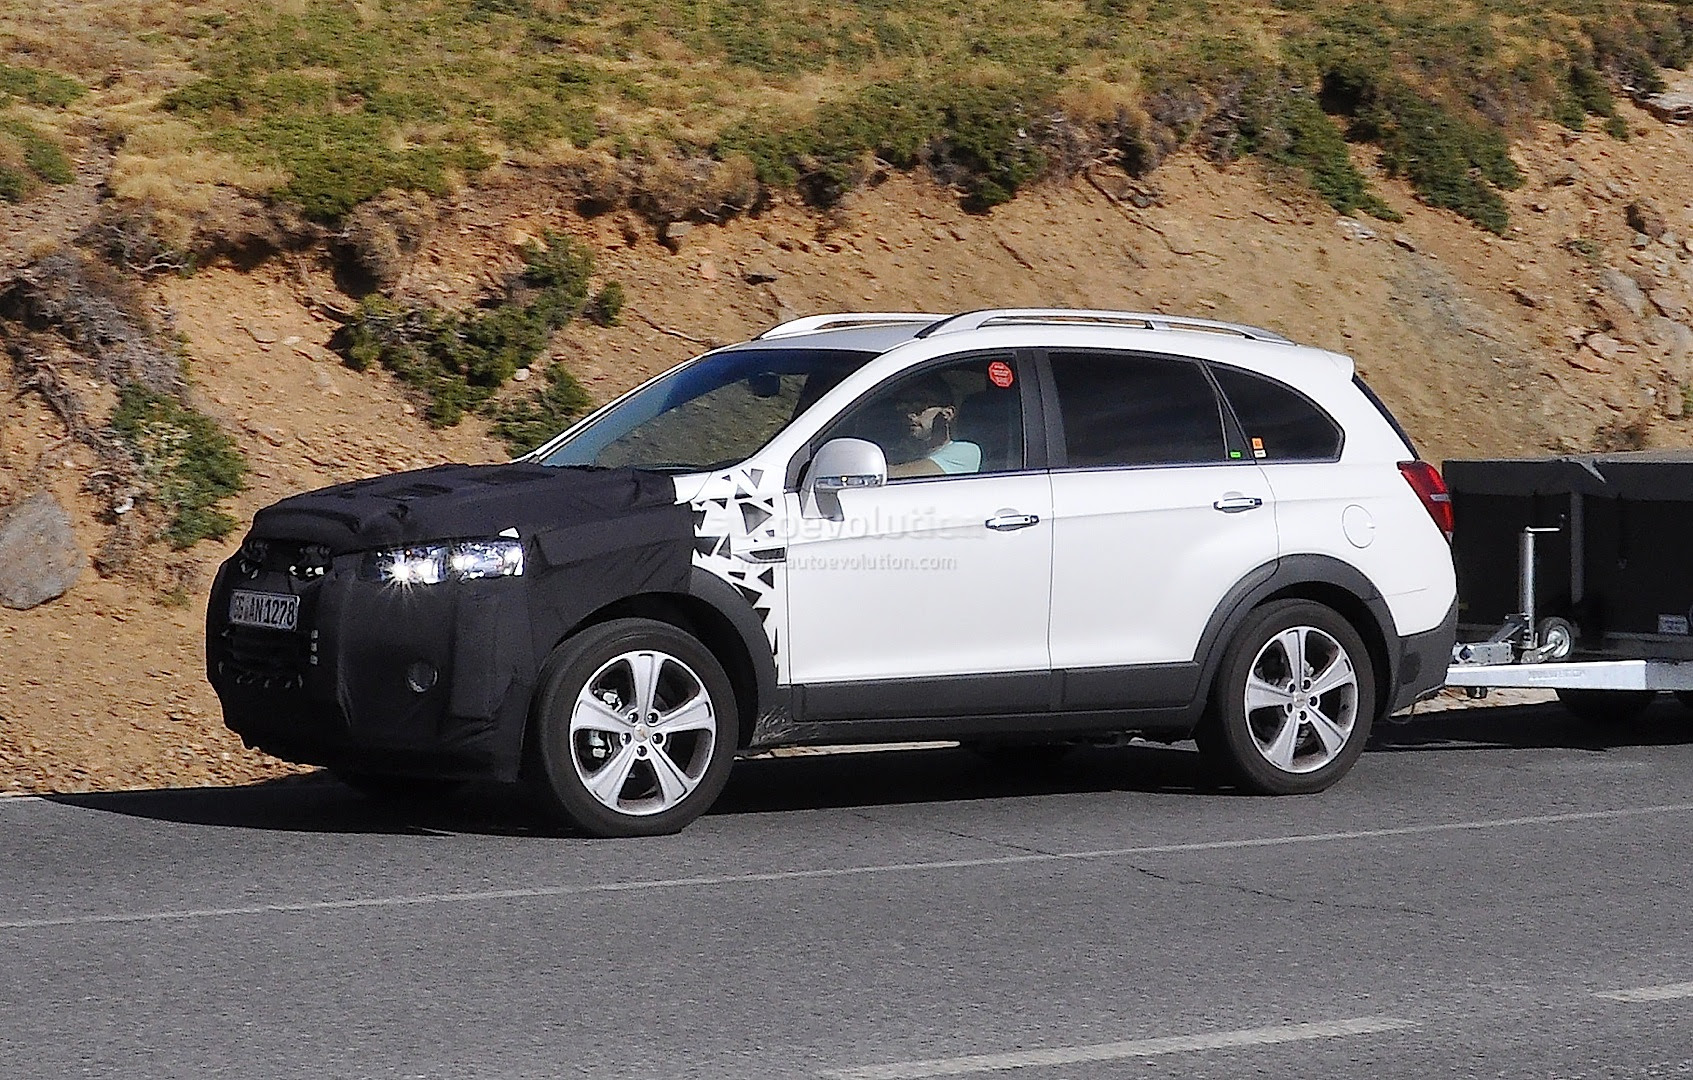 2015 Chevrolet Captiva Opel Antara Facelift Spied Autoevolution